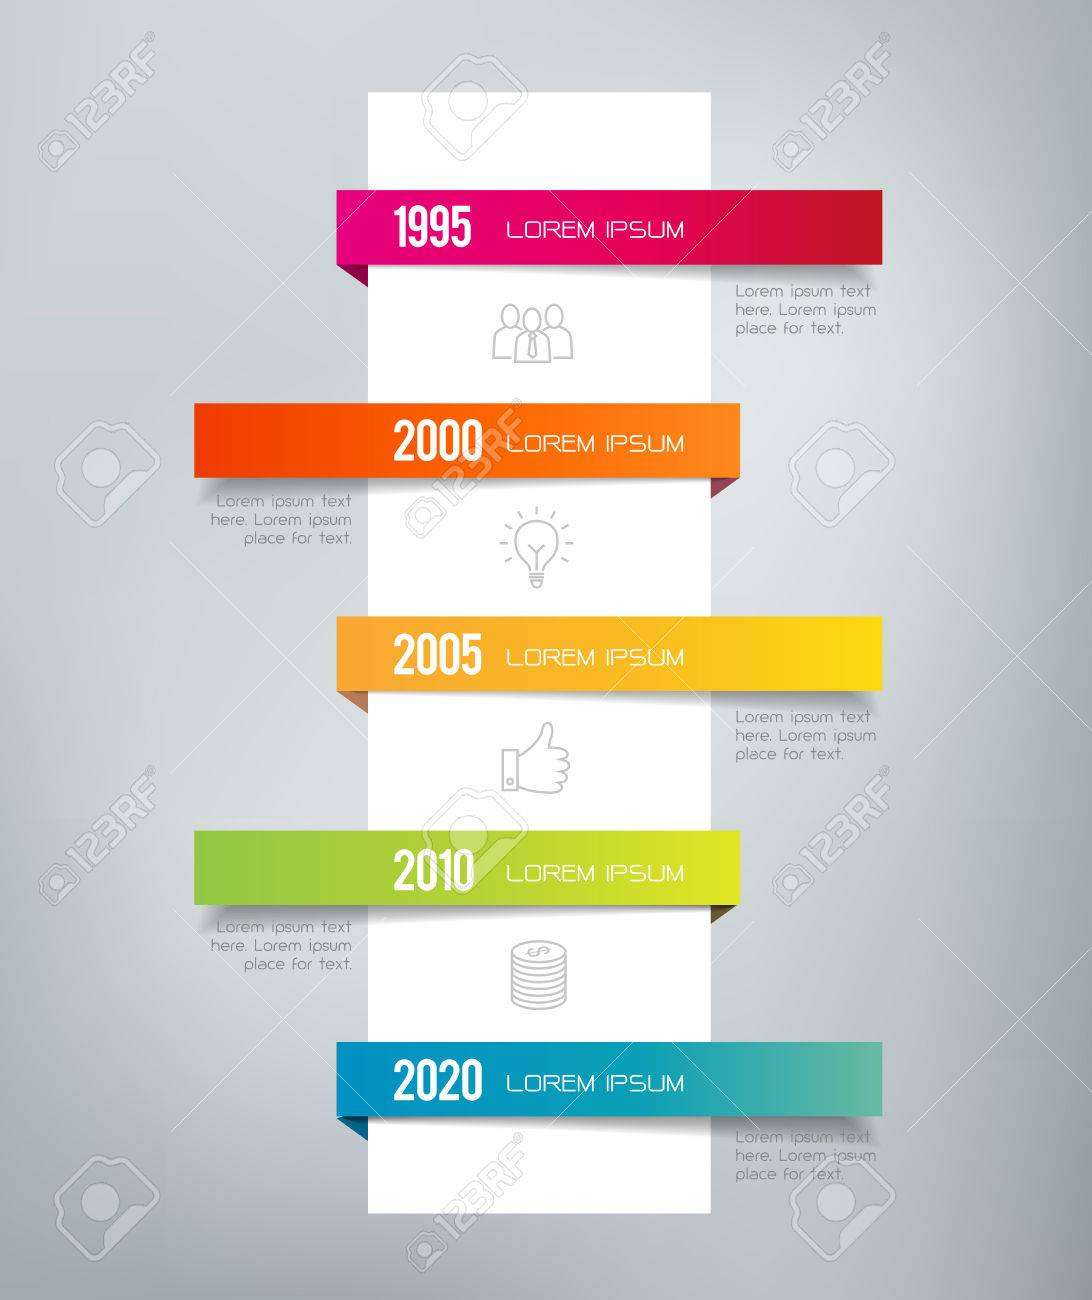 infographic timeline can illustrate a strategy a workflow